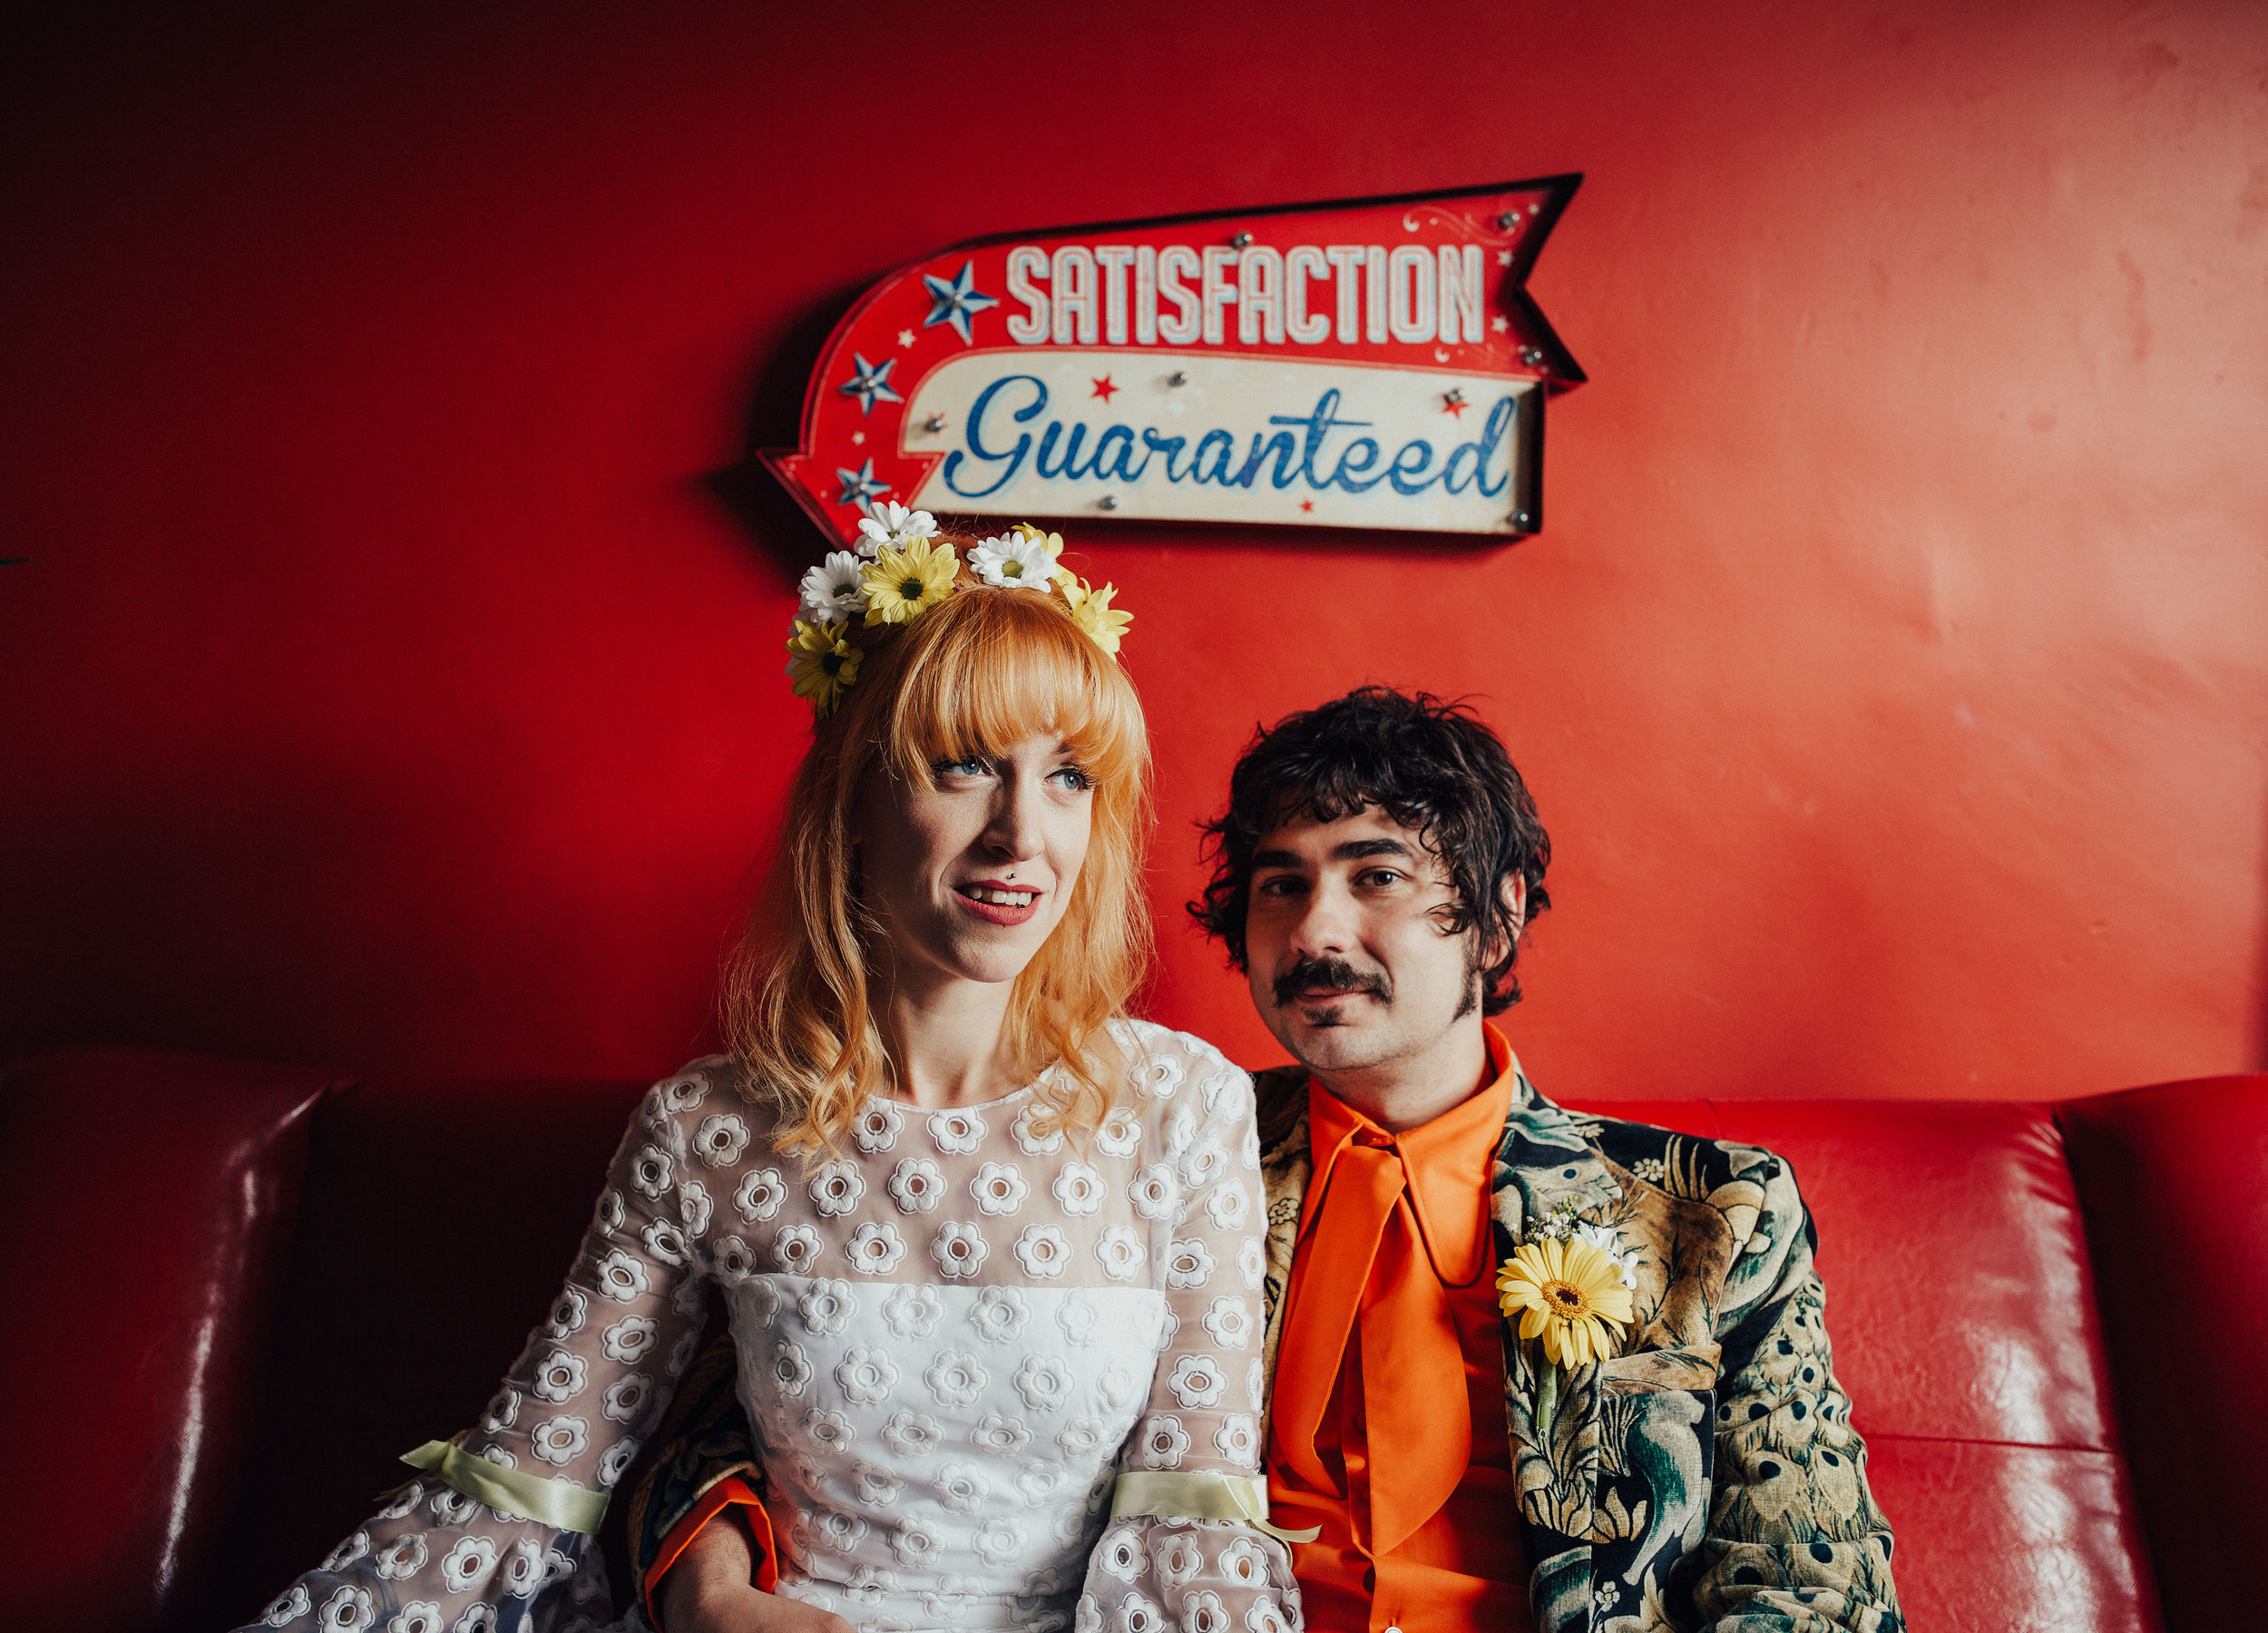 ALTERNATIVE_WEDDING_PHOTOGRAPHY_LEEDS_UK_PJ_PHILLIPS_PHOTOGRAPHY_115.jpg